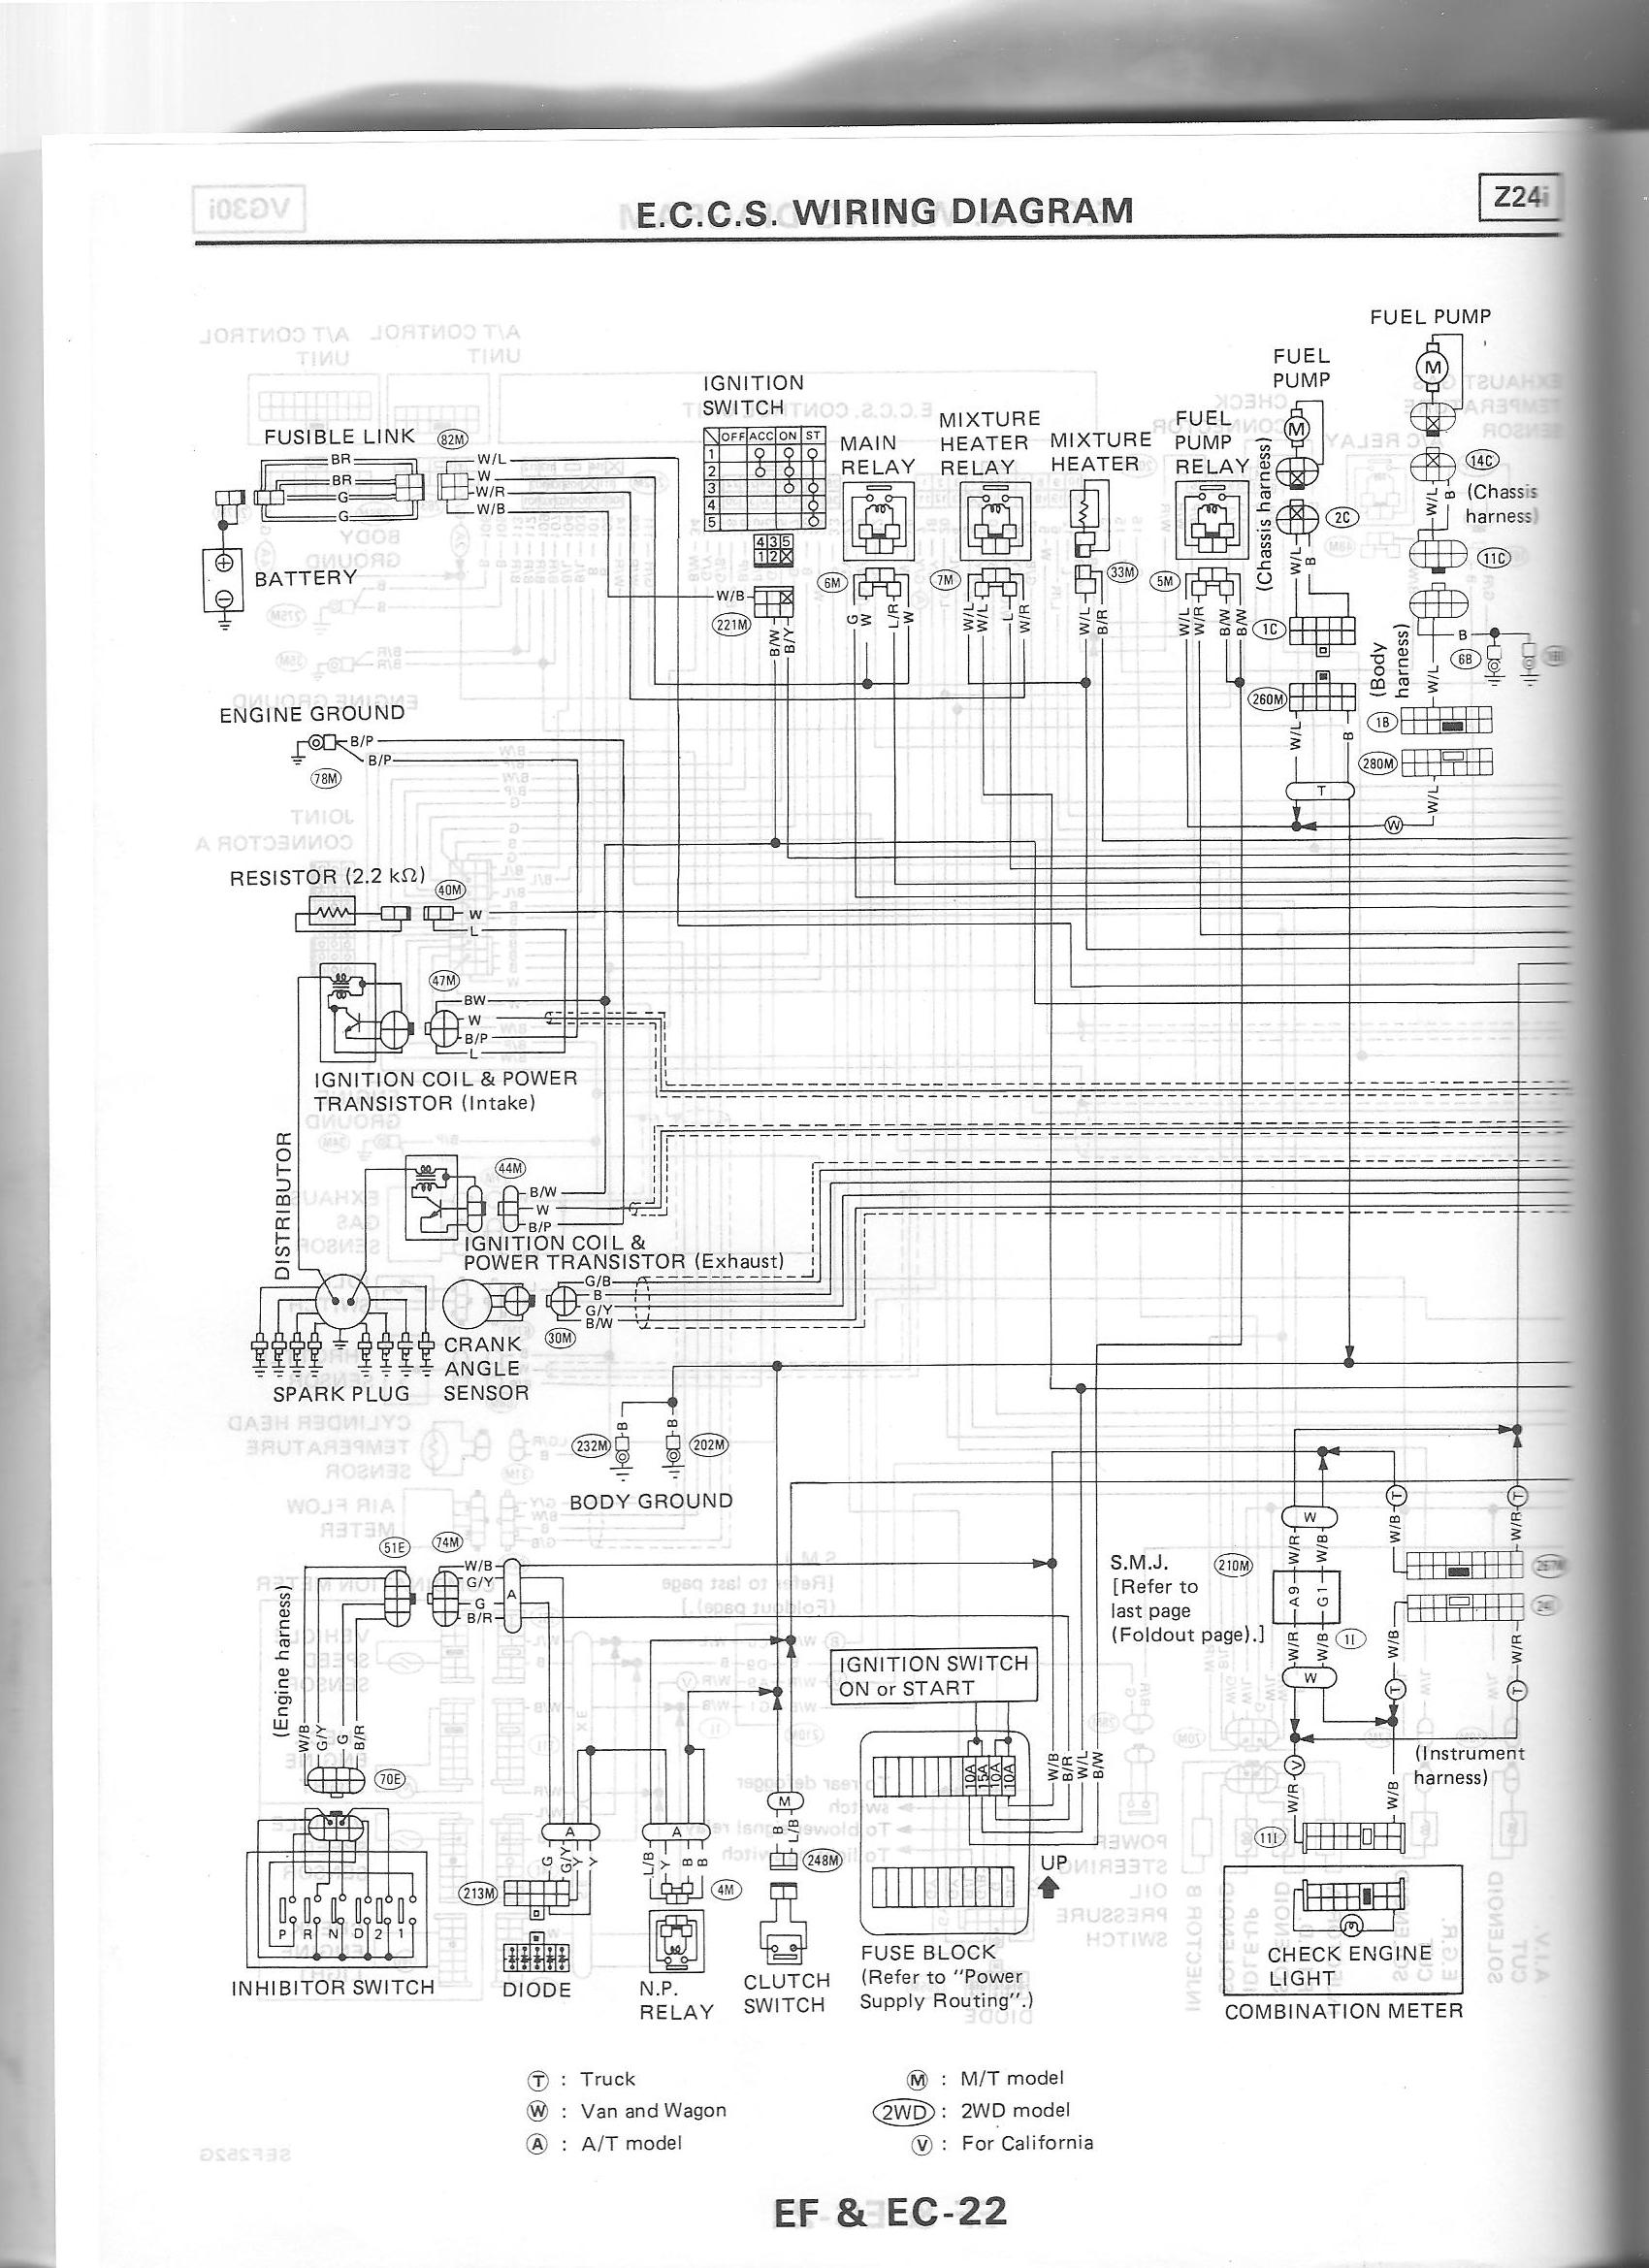 wiring1_88 nissan nut wiring diagram for 1993 nissan d21 2.4l at eliteediting.co